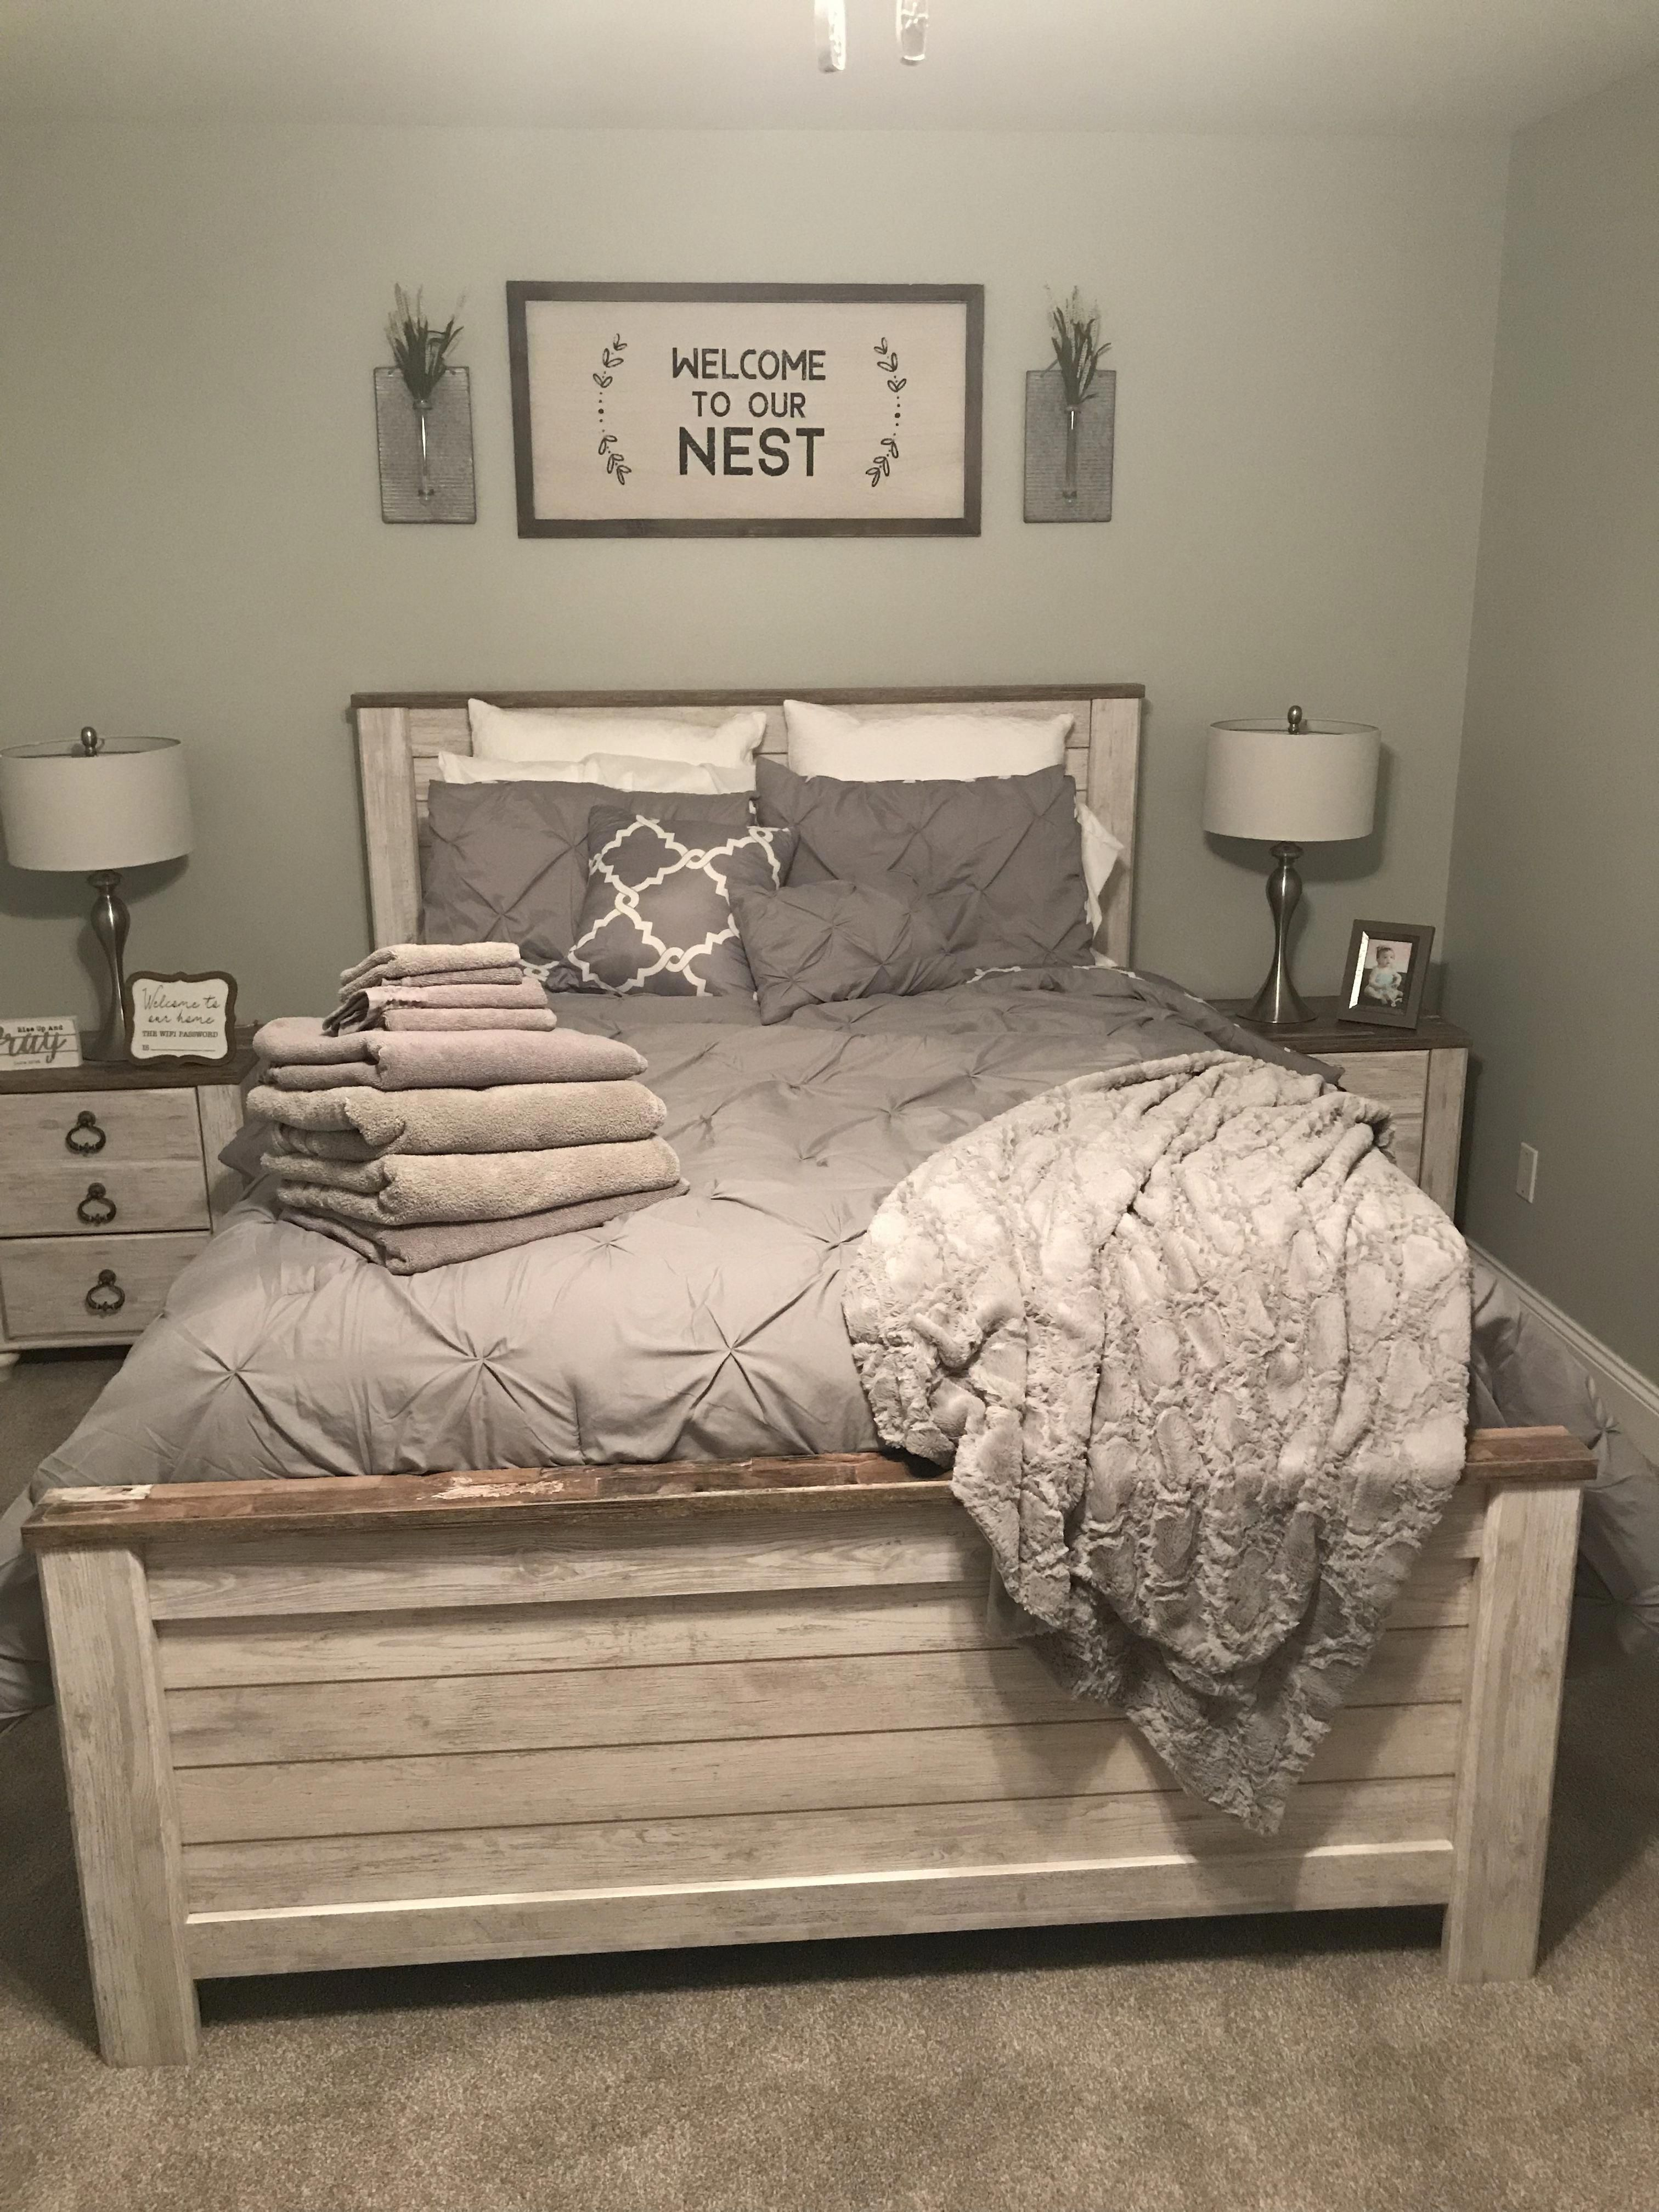 Guest Bedroom Ideas Sign From Hobby Lobby Bedding From Target Bed Set From Farmhouse Bedroom Furniture Master Bedroom Color Schemes Bedroom Furniture Design